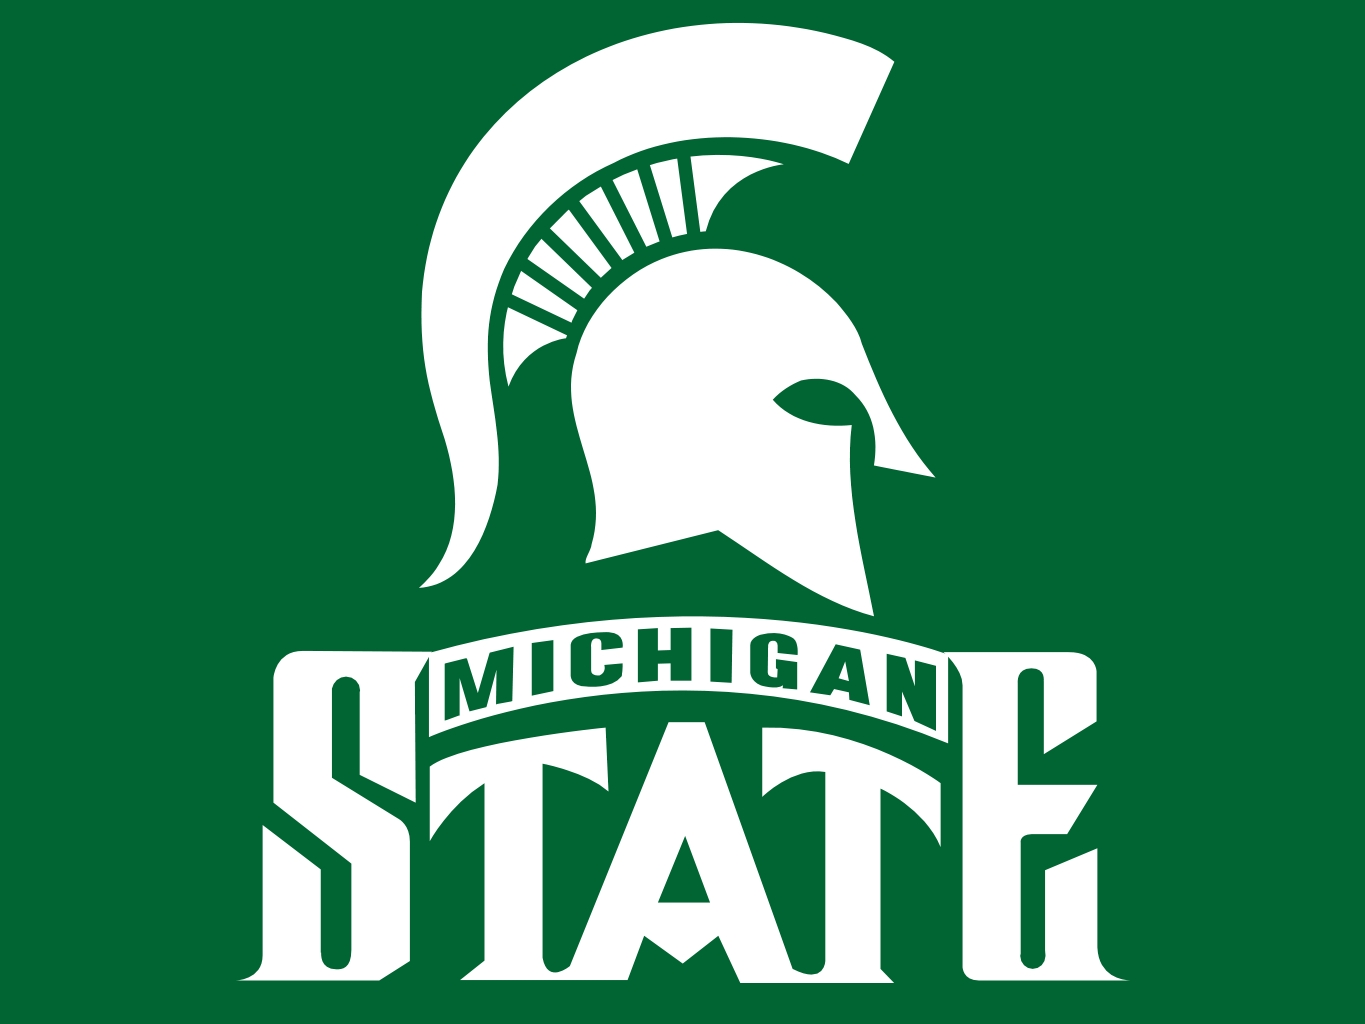 Michigan State Spartans Football Colors Green